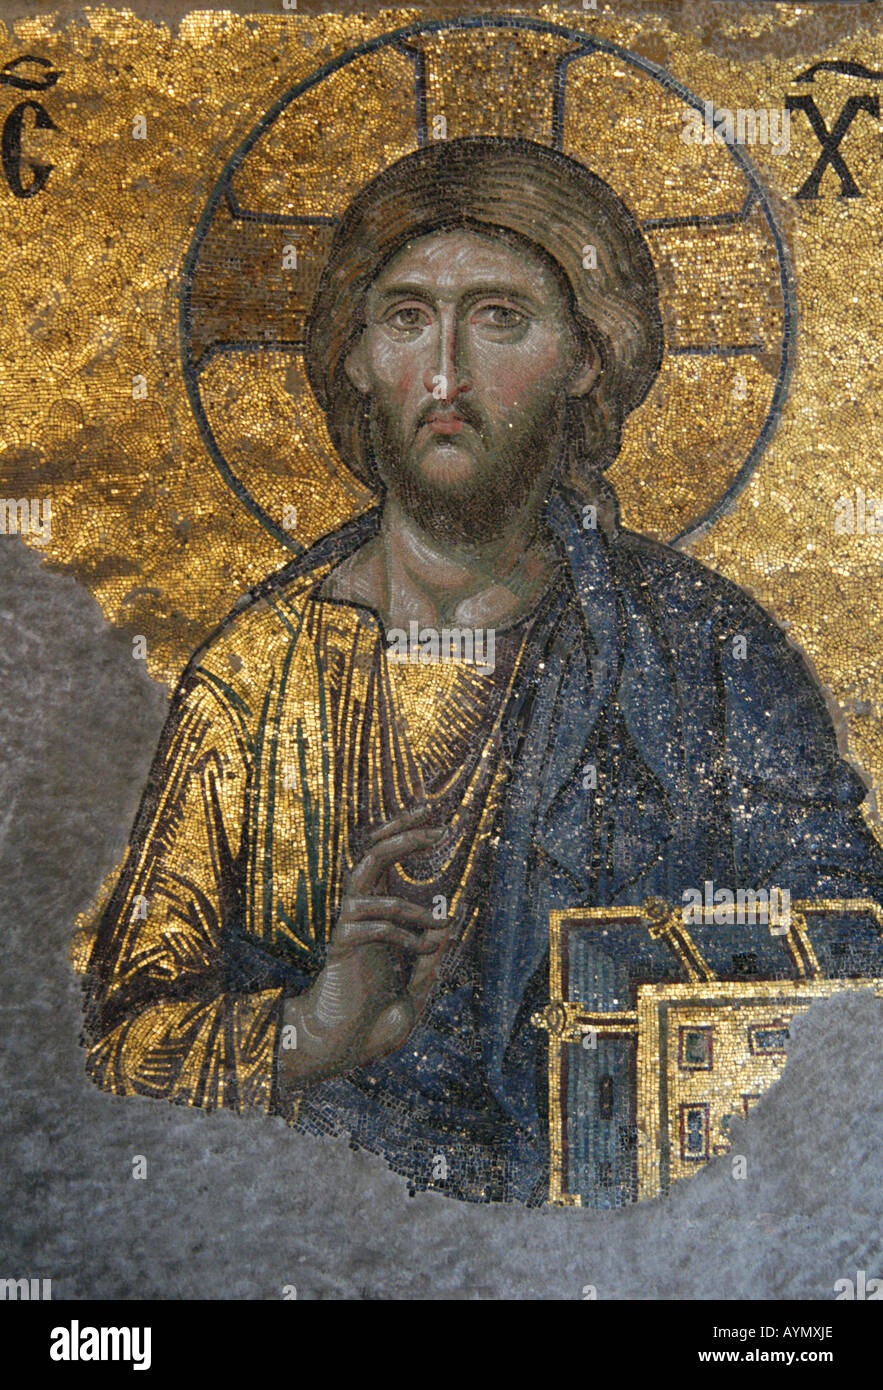 Jesus Christ, a Byzantine mosaic in the interior of Hagia Sophia in Istanbul, Turkey - Stock Image